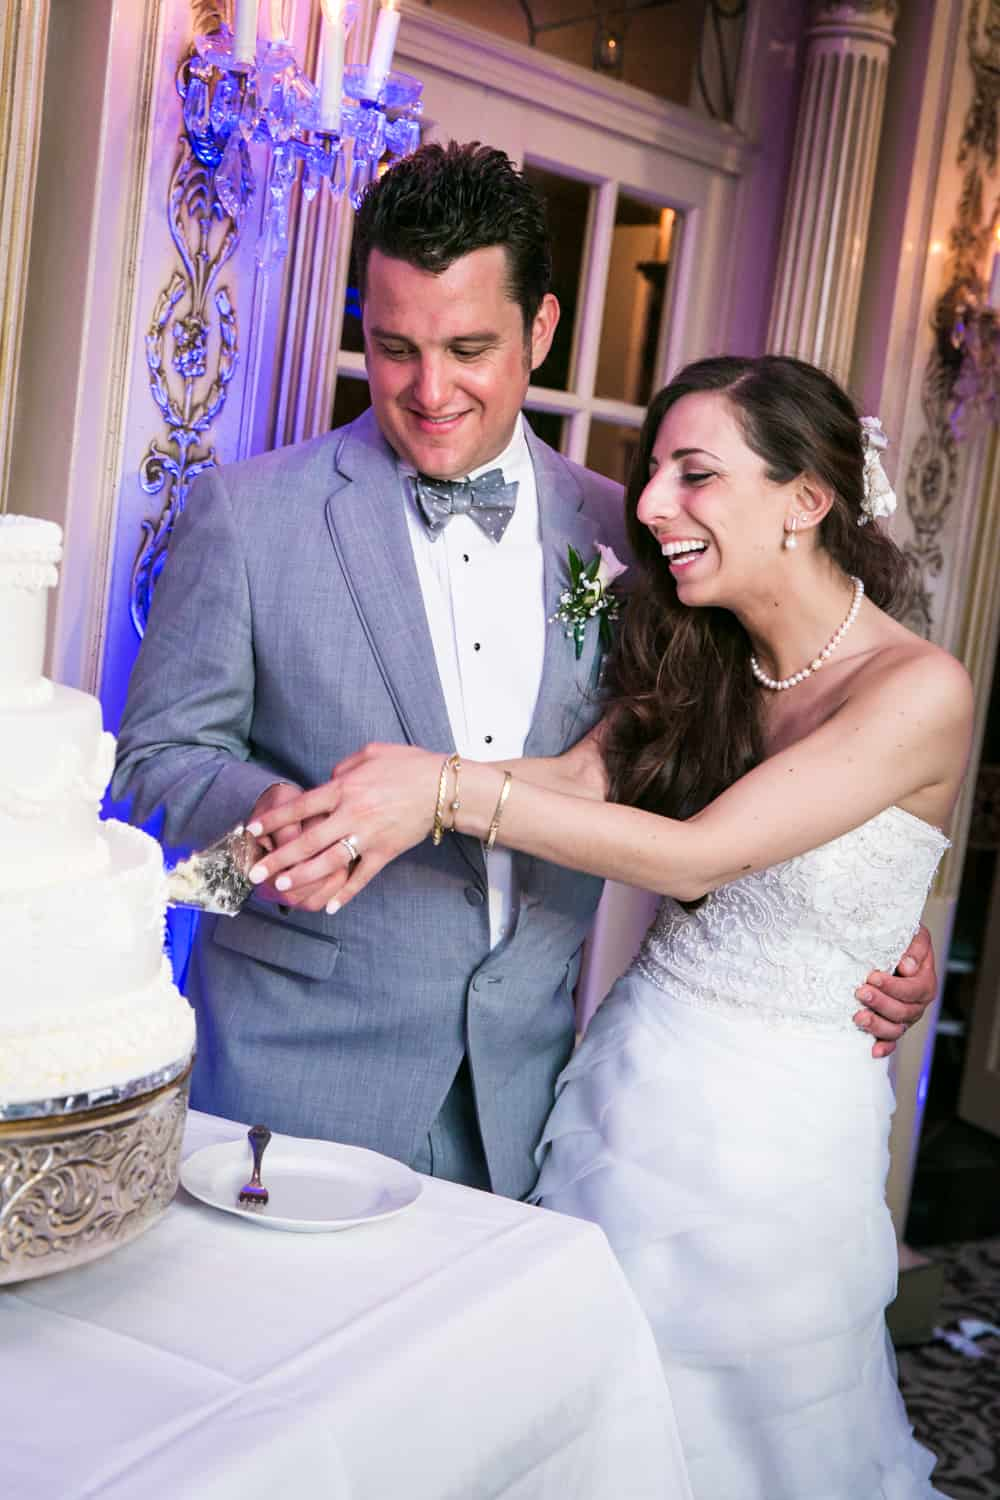 Bride and groom cutting cake at Manor wedding reception